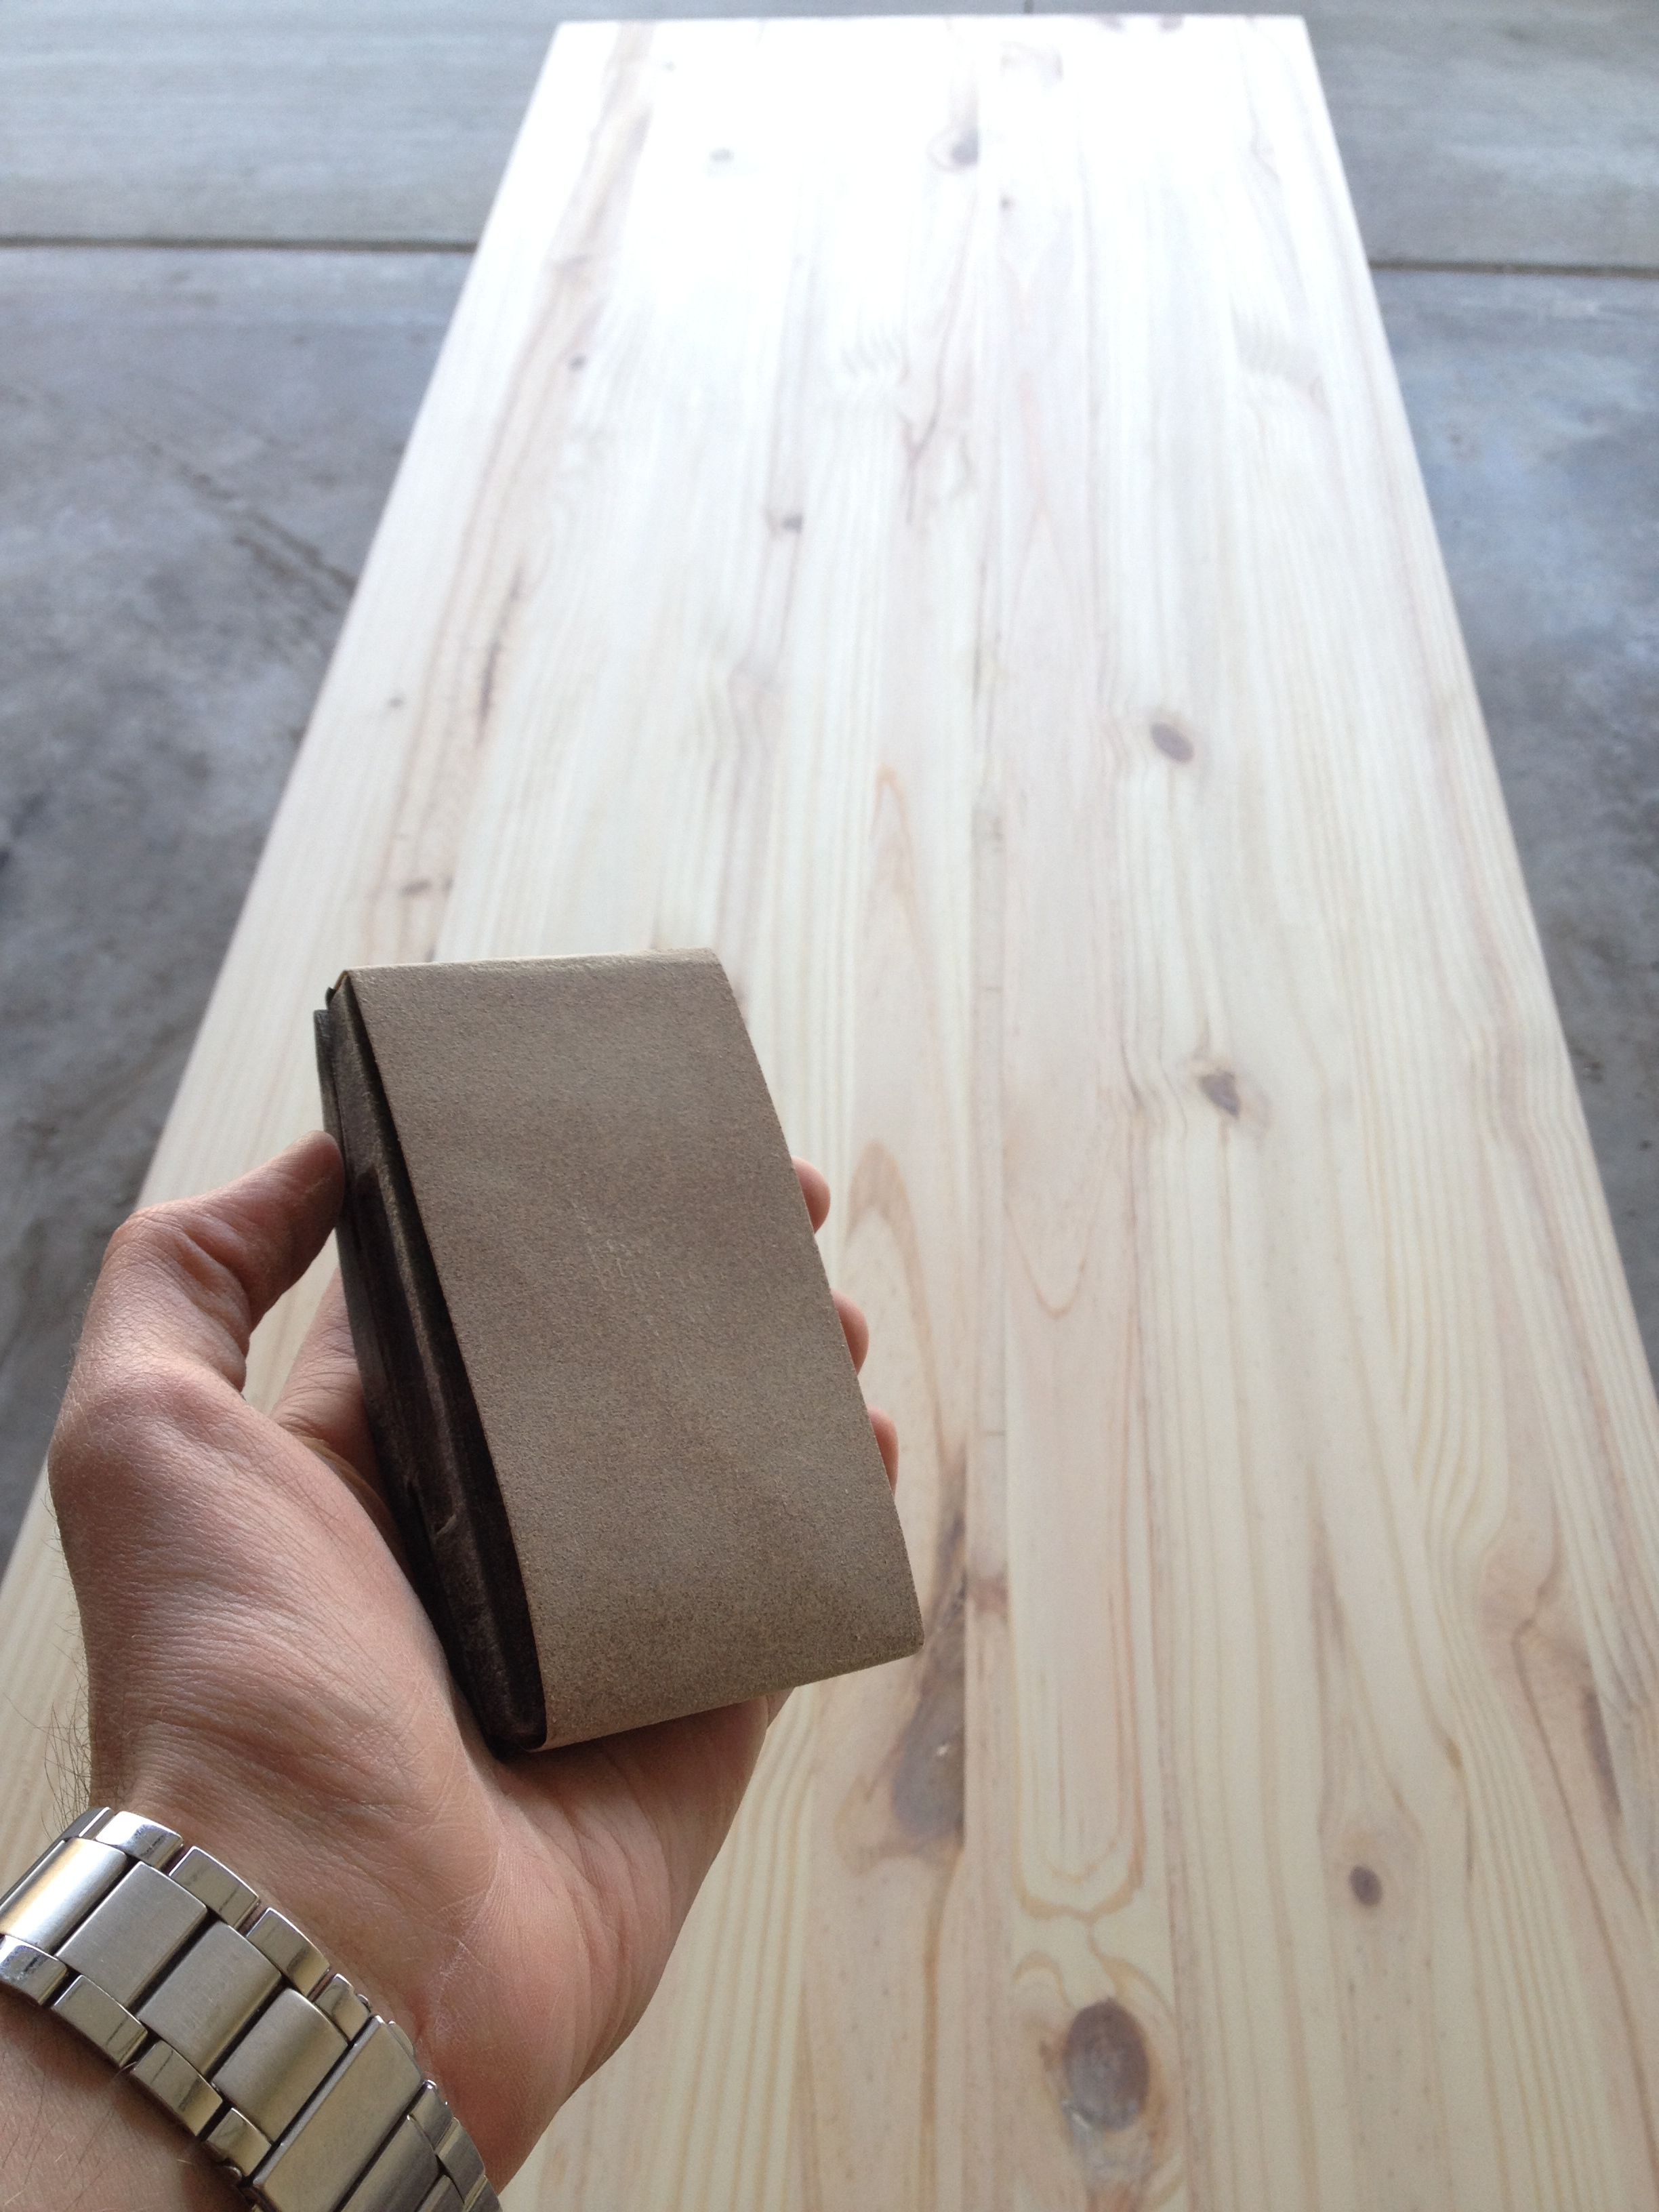 Picture of Sand & Stain Wood